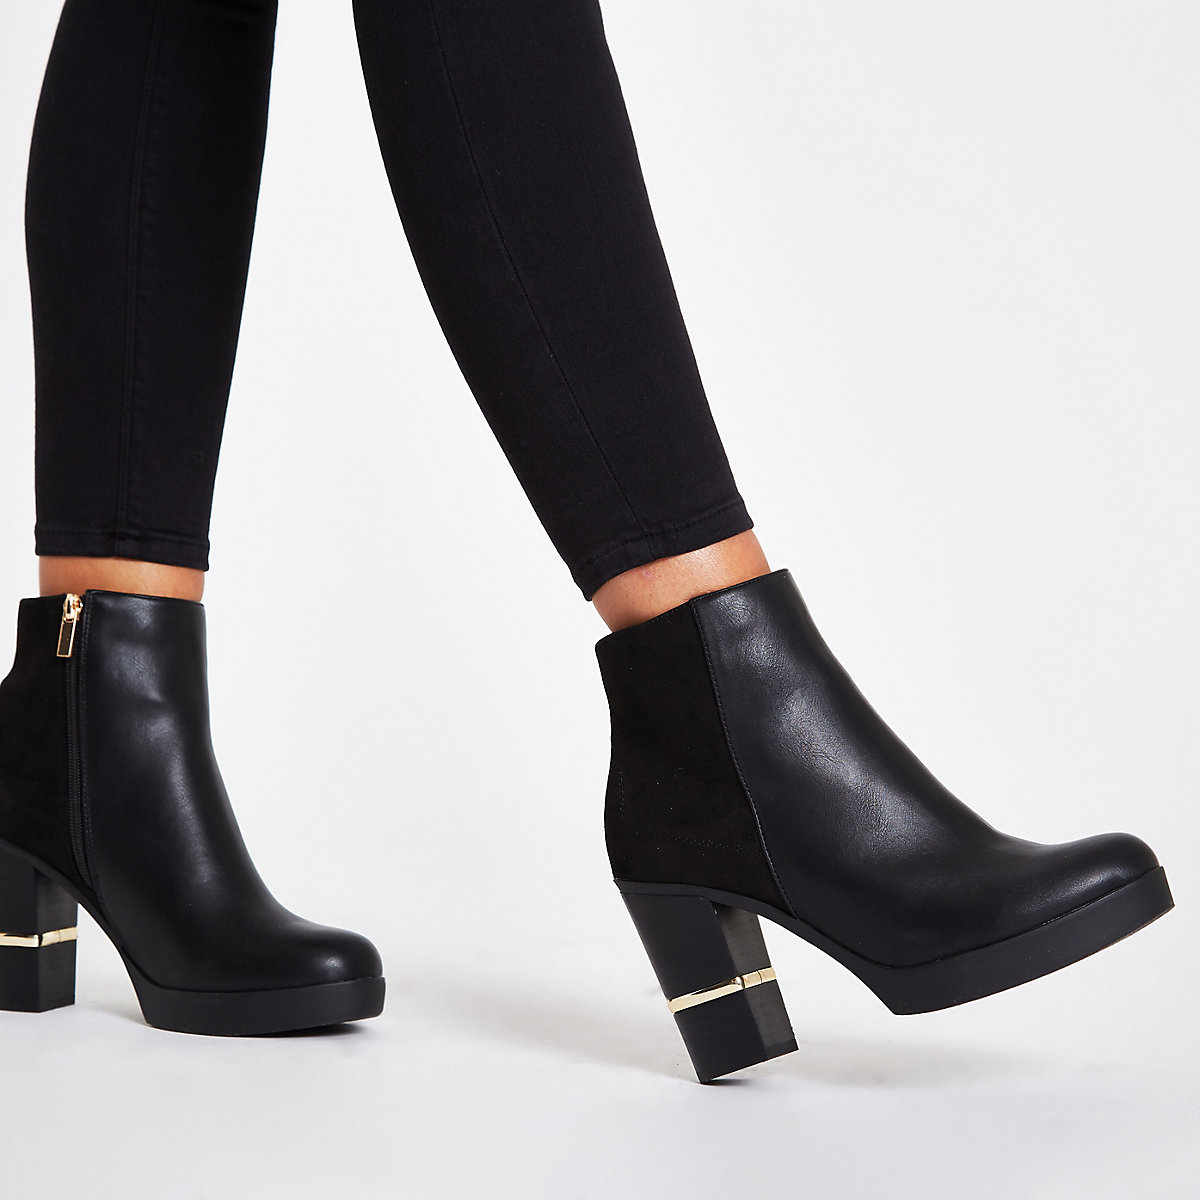 Black faux leather block heel ankle boots - Boots - Shoes   Boots ... 28154cc64117